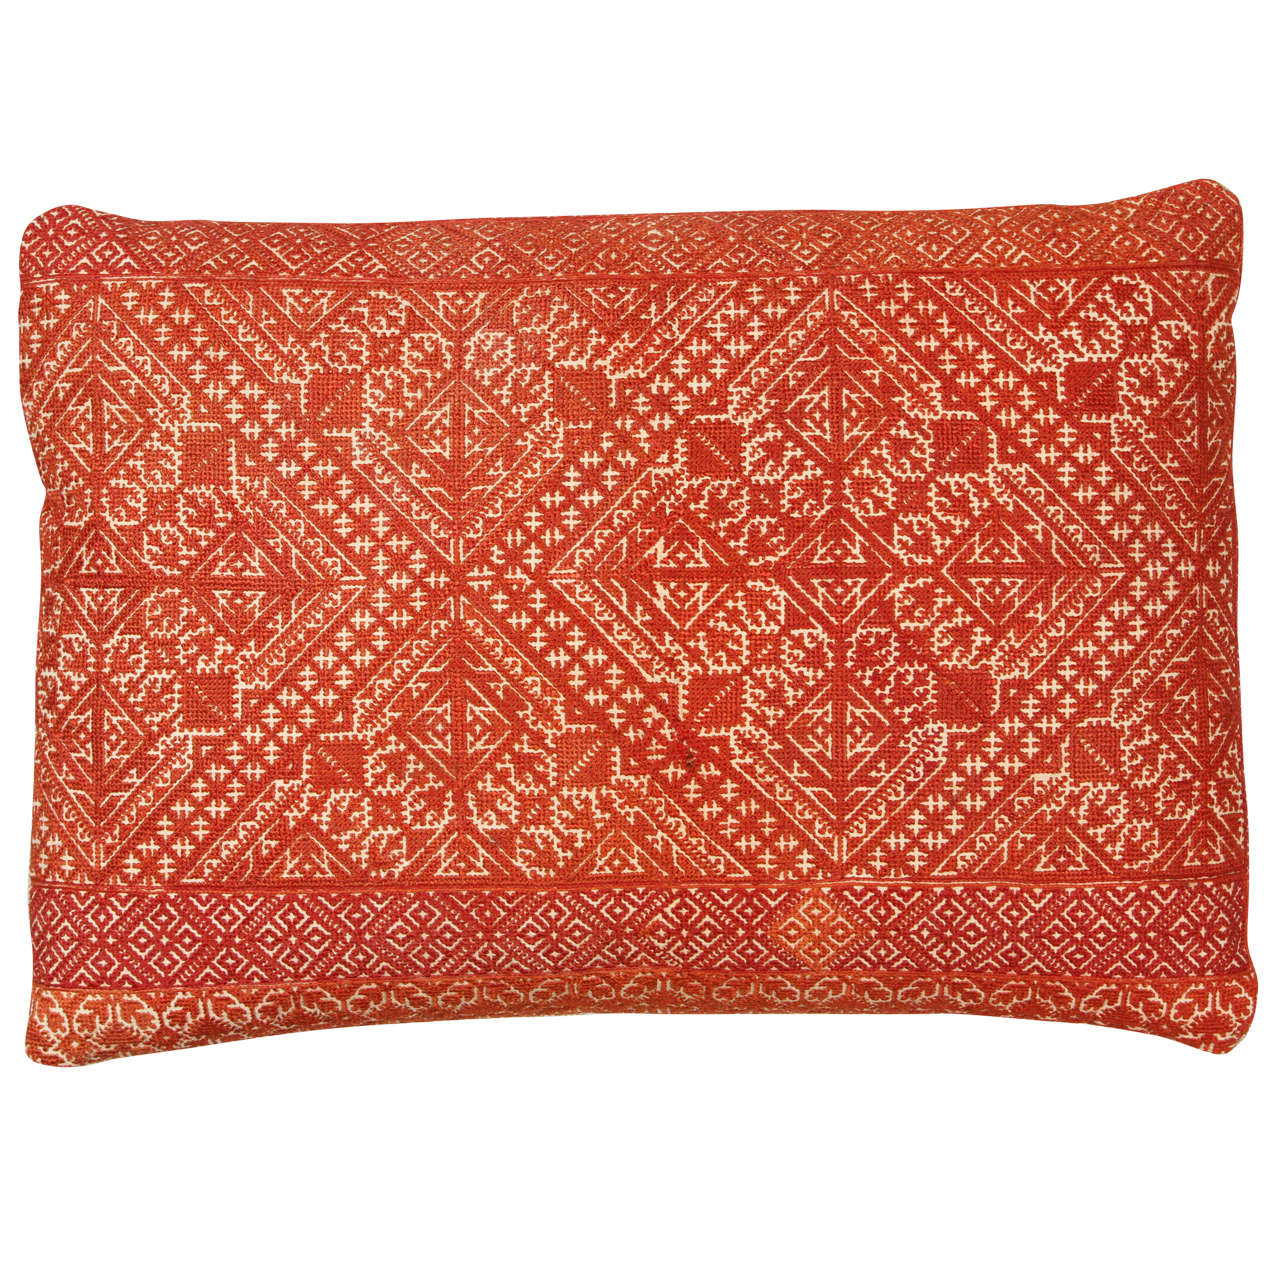 Antique Moroccan Fez Embroidered Pillow At 1stdibs